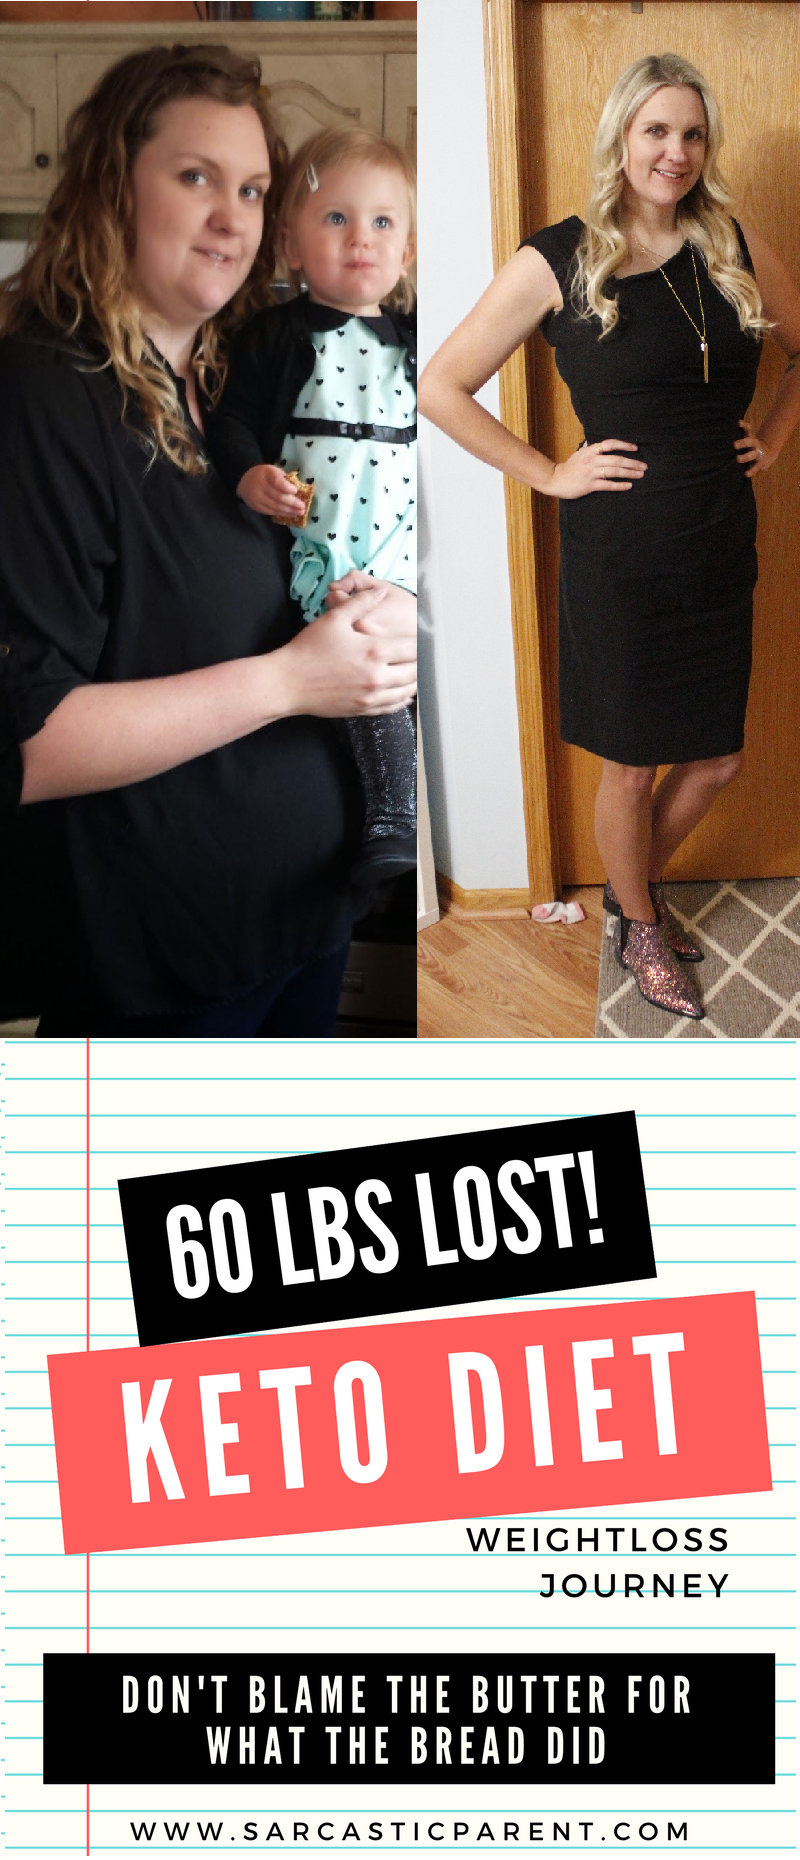 How Long Would It Take to Lose 60 Pounds on a Treadmill ...